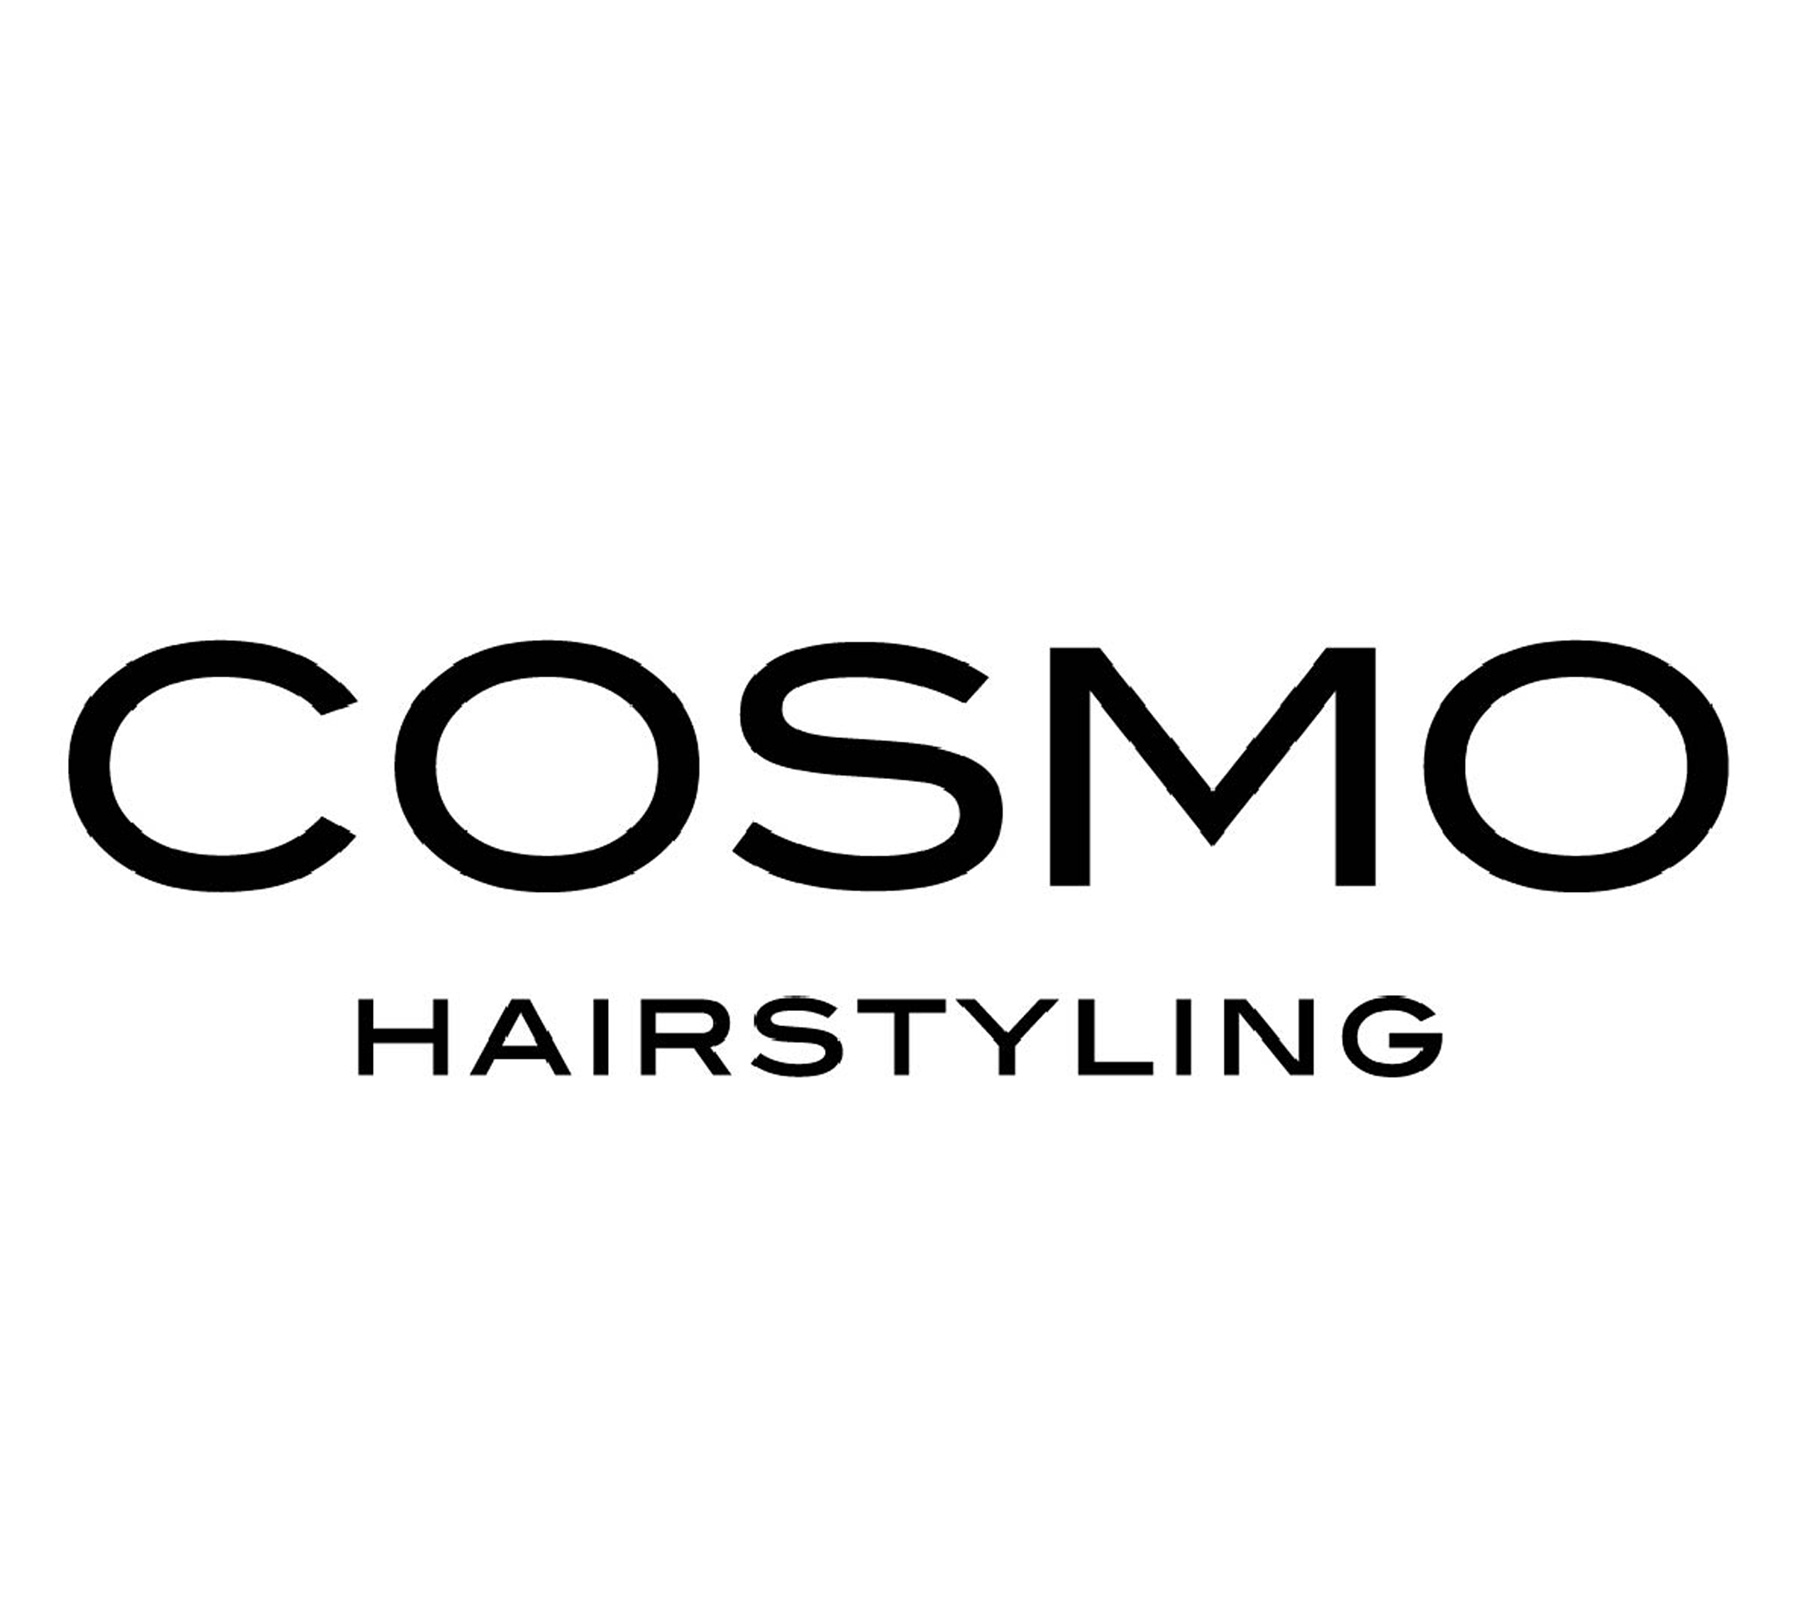 Logo Cosmo Hairstyling